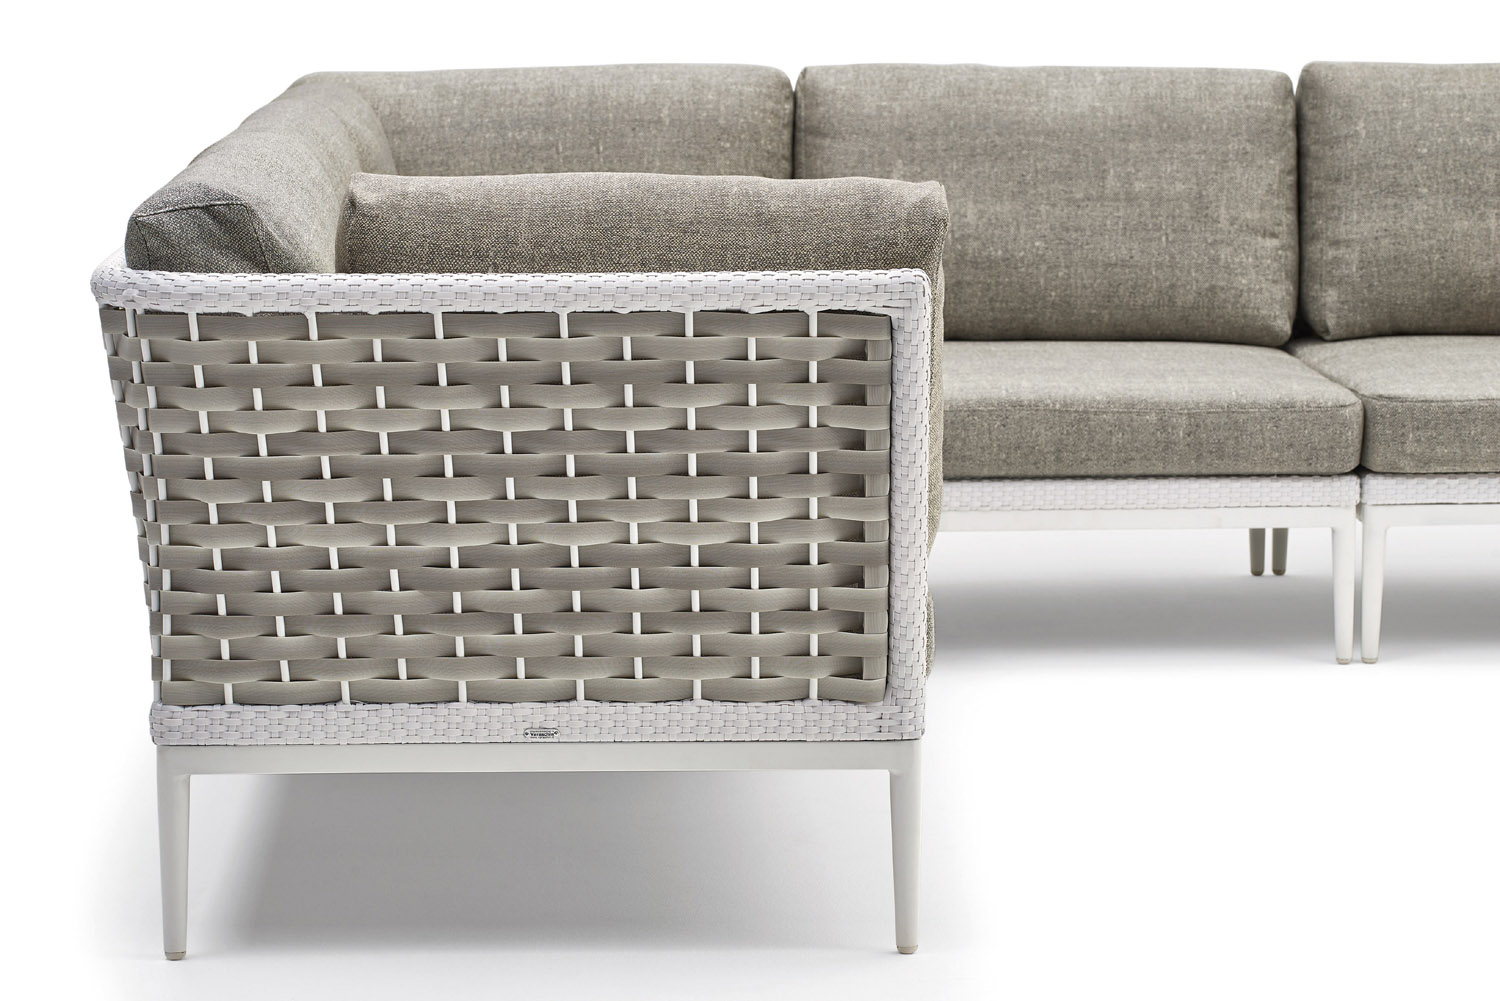 Il Decor Boston Algarve Modular Sofa Varaschin Italy